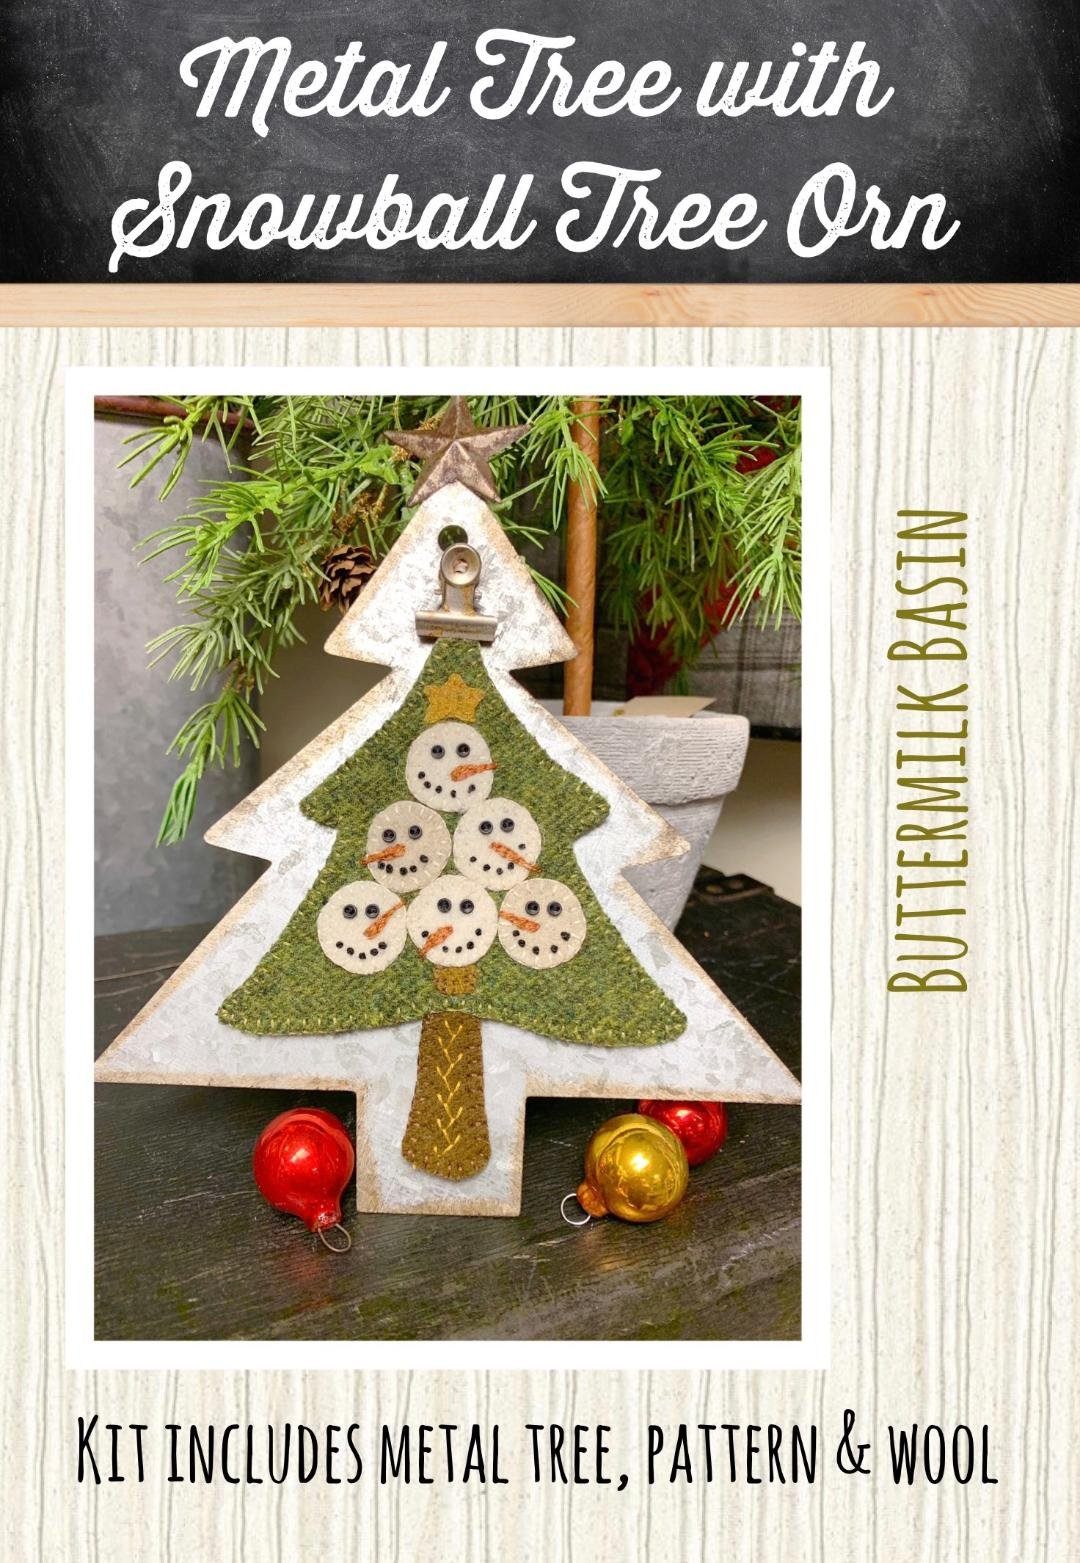 Metal Tree With Snowballs Tree * Metal Tree Stand, KIT & Pattern Included